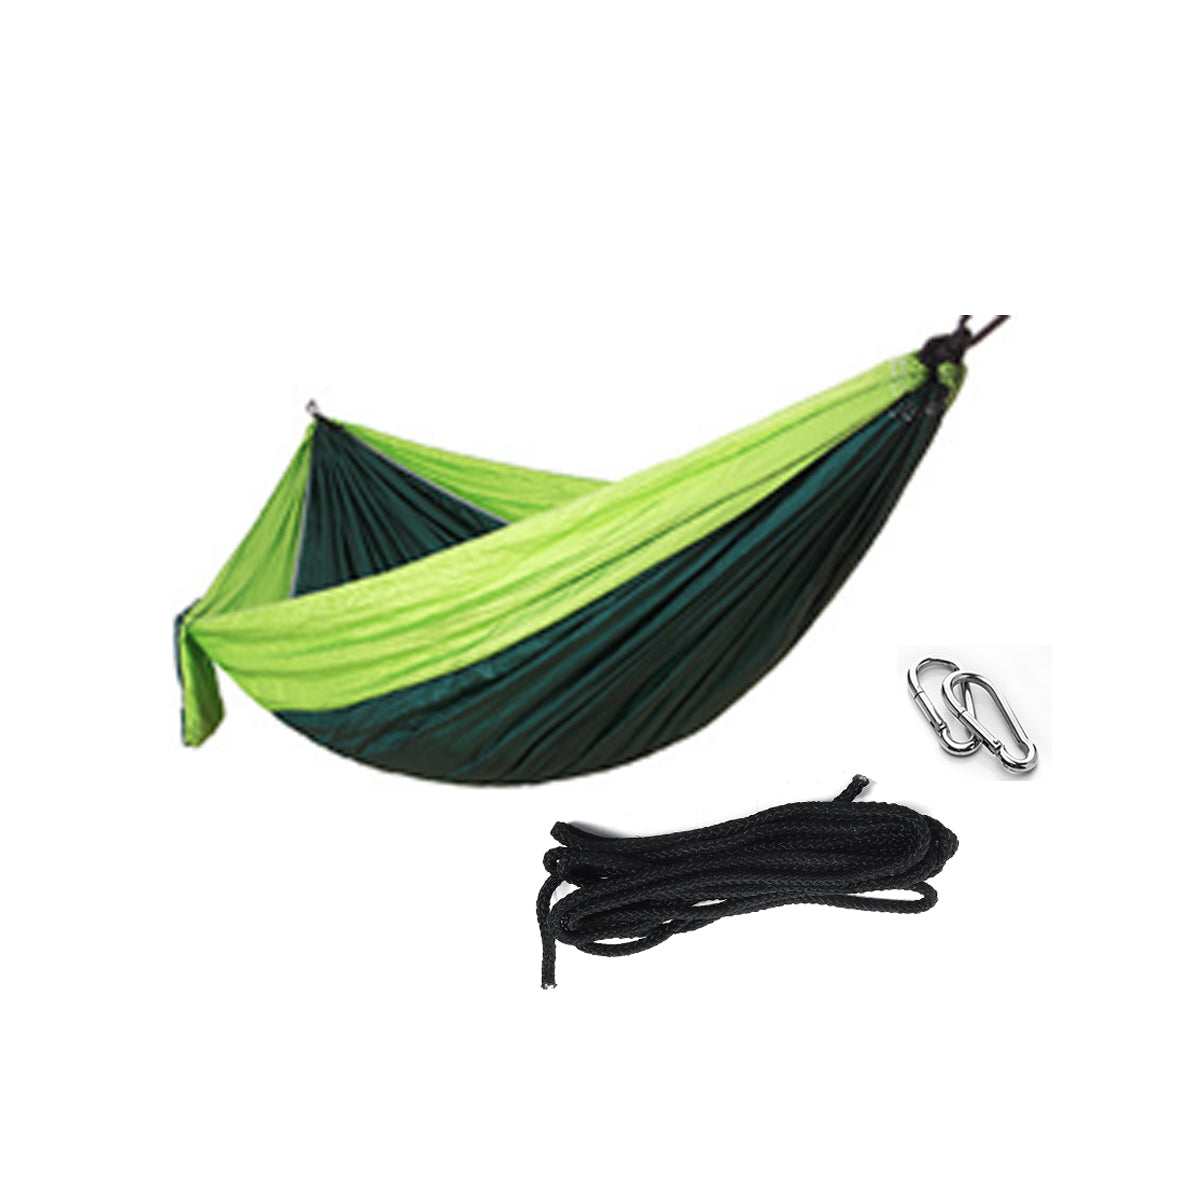 RLTGEAR™ Double Person Hanging Hammock Portable Camping Hammock Bed Max Load 200KG